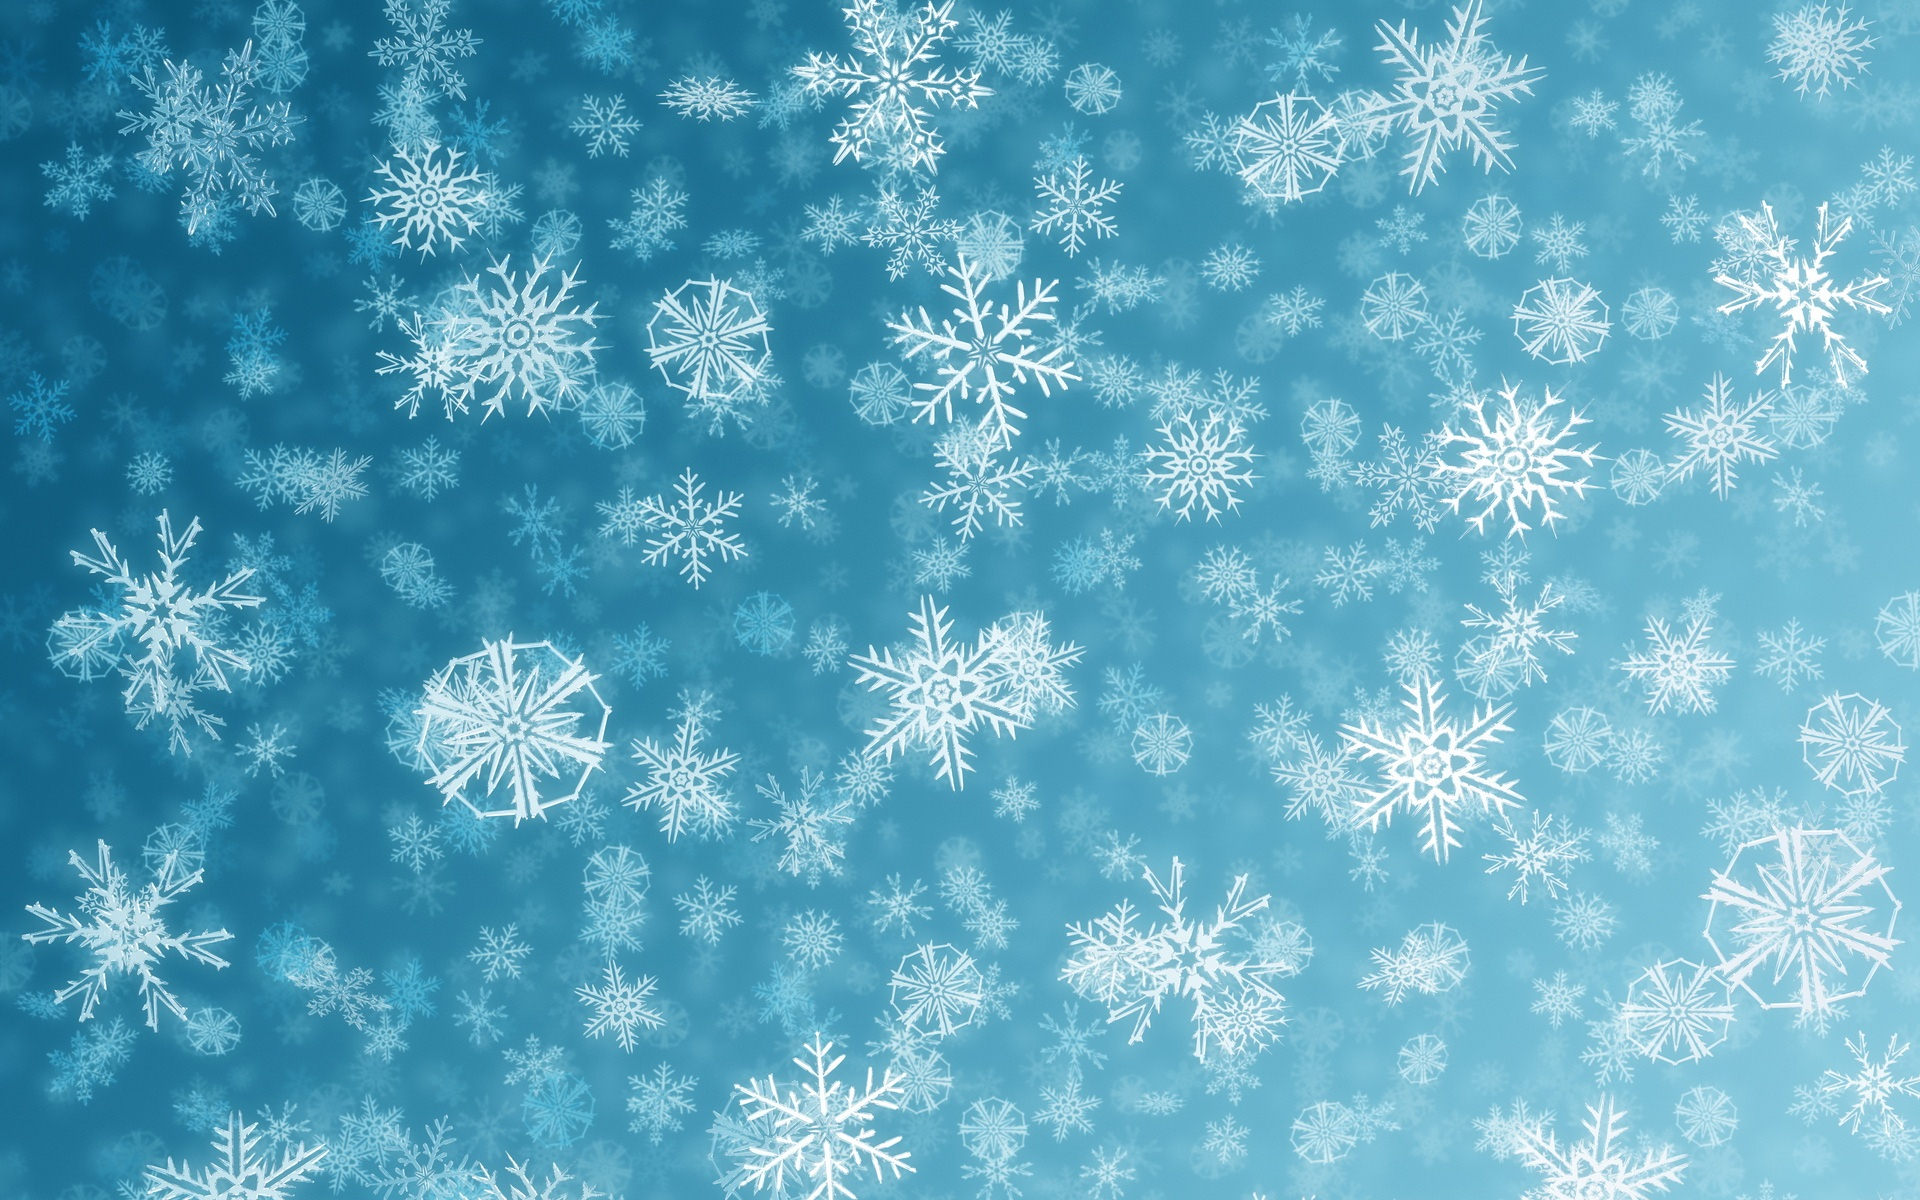 Snowflakes Pattern Widescreen Wallpaper